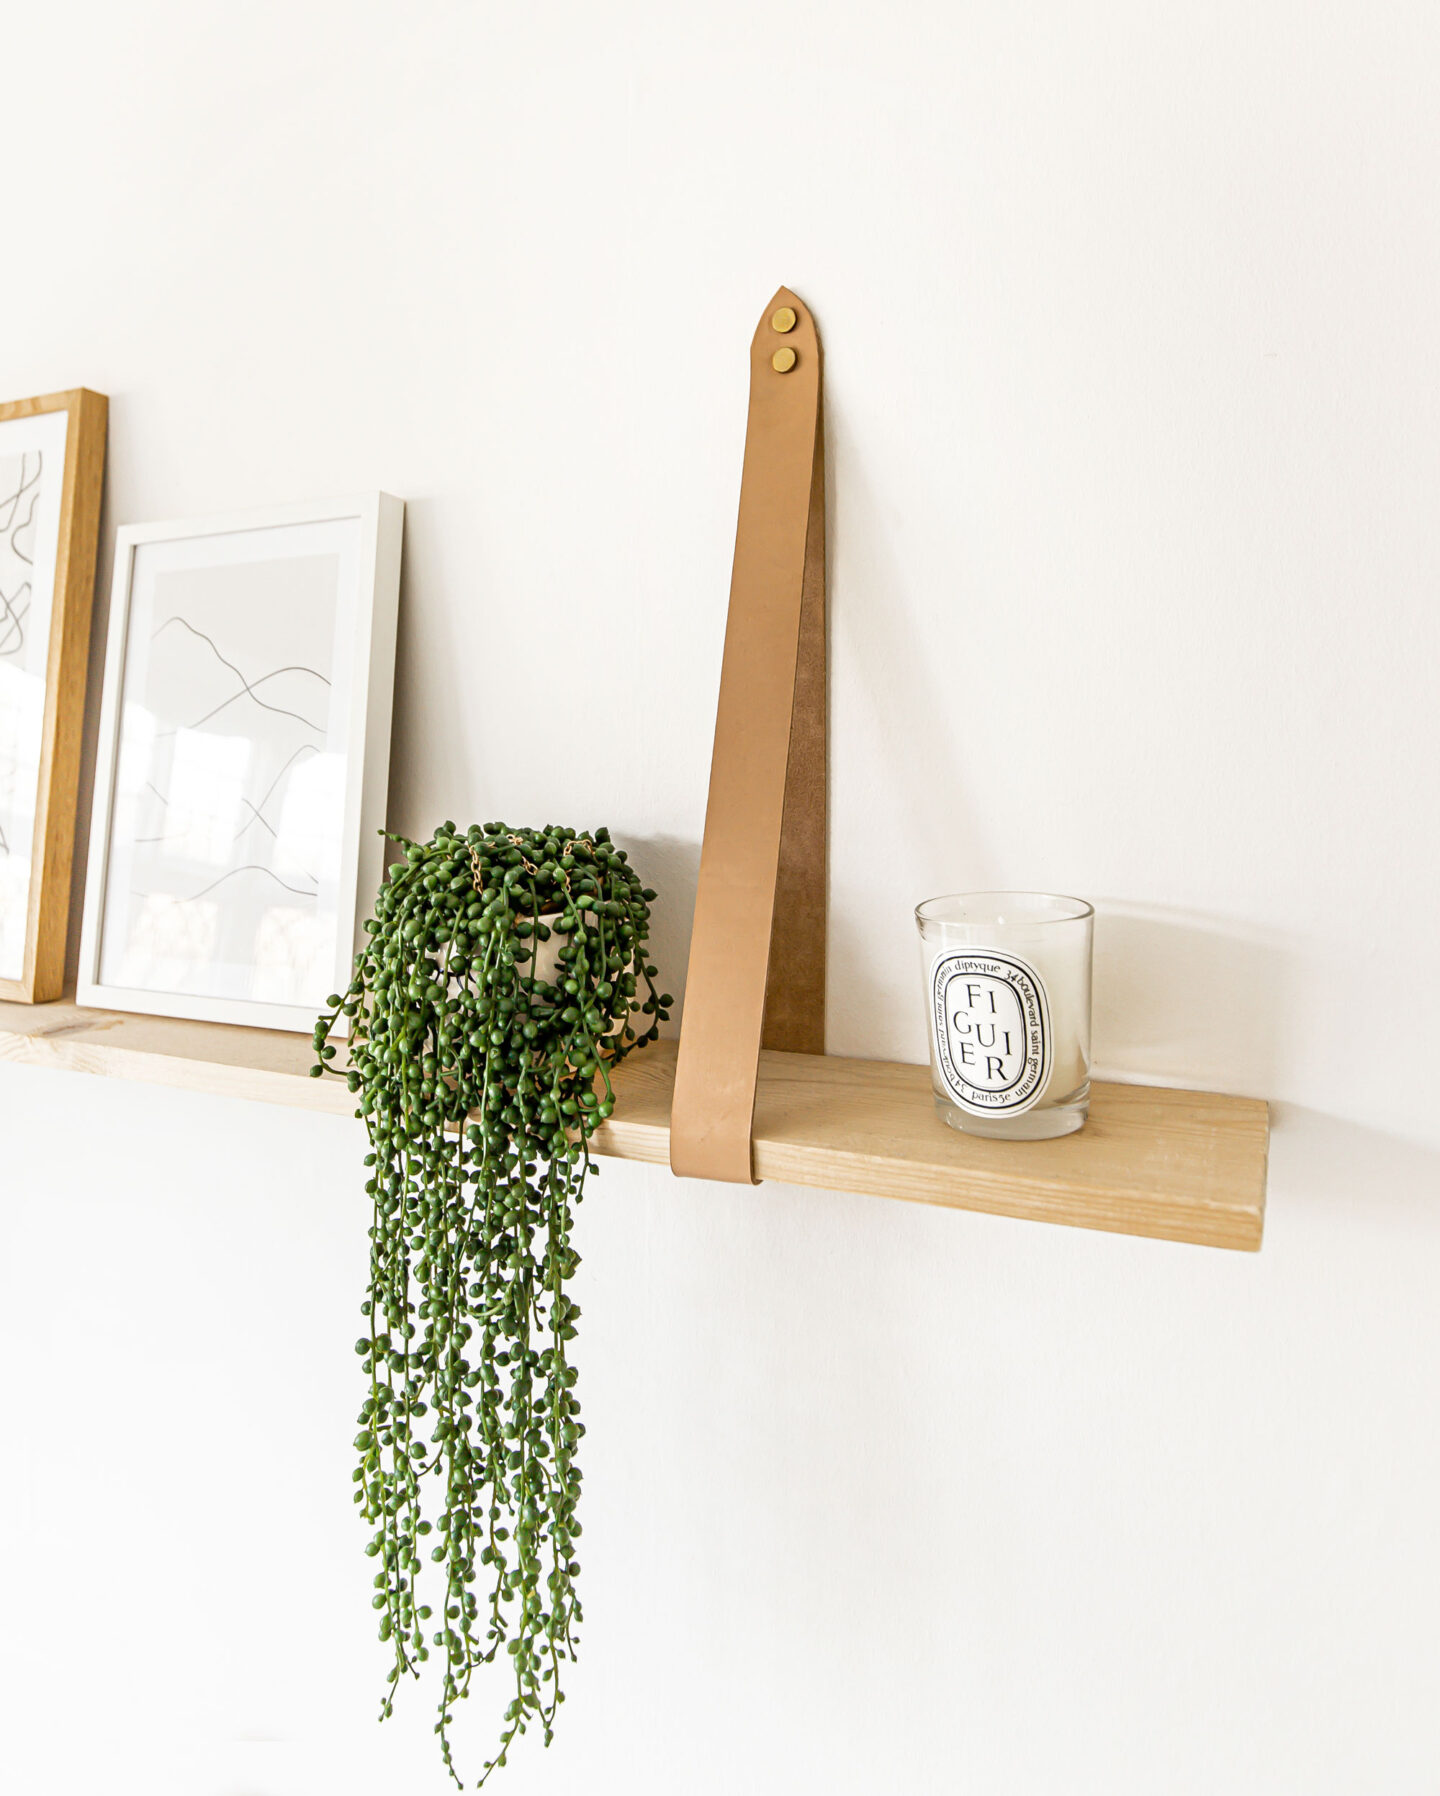 DIY Shelf Tutorial Floating Wooden Shelf with Leather Straps - Kelseyinlondon - homewithkelsey - Kelsey Heinrichs